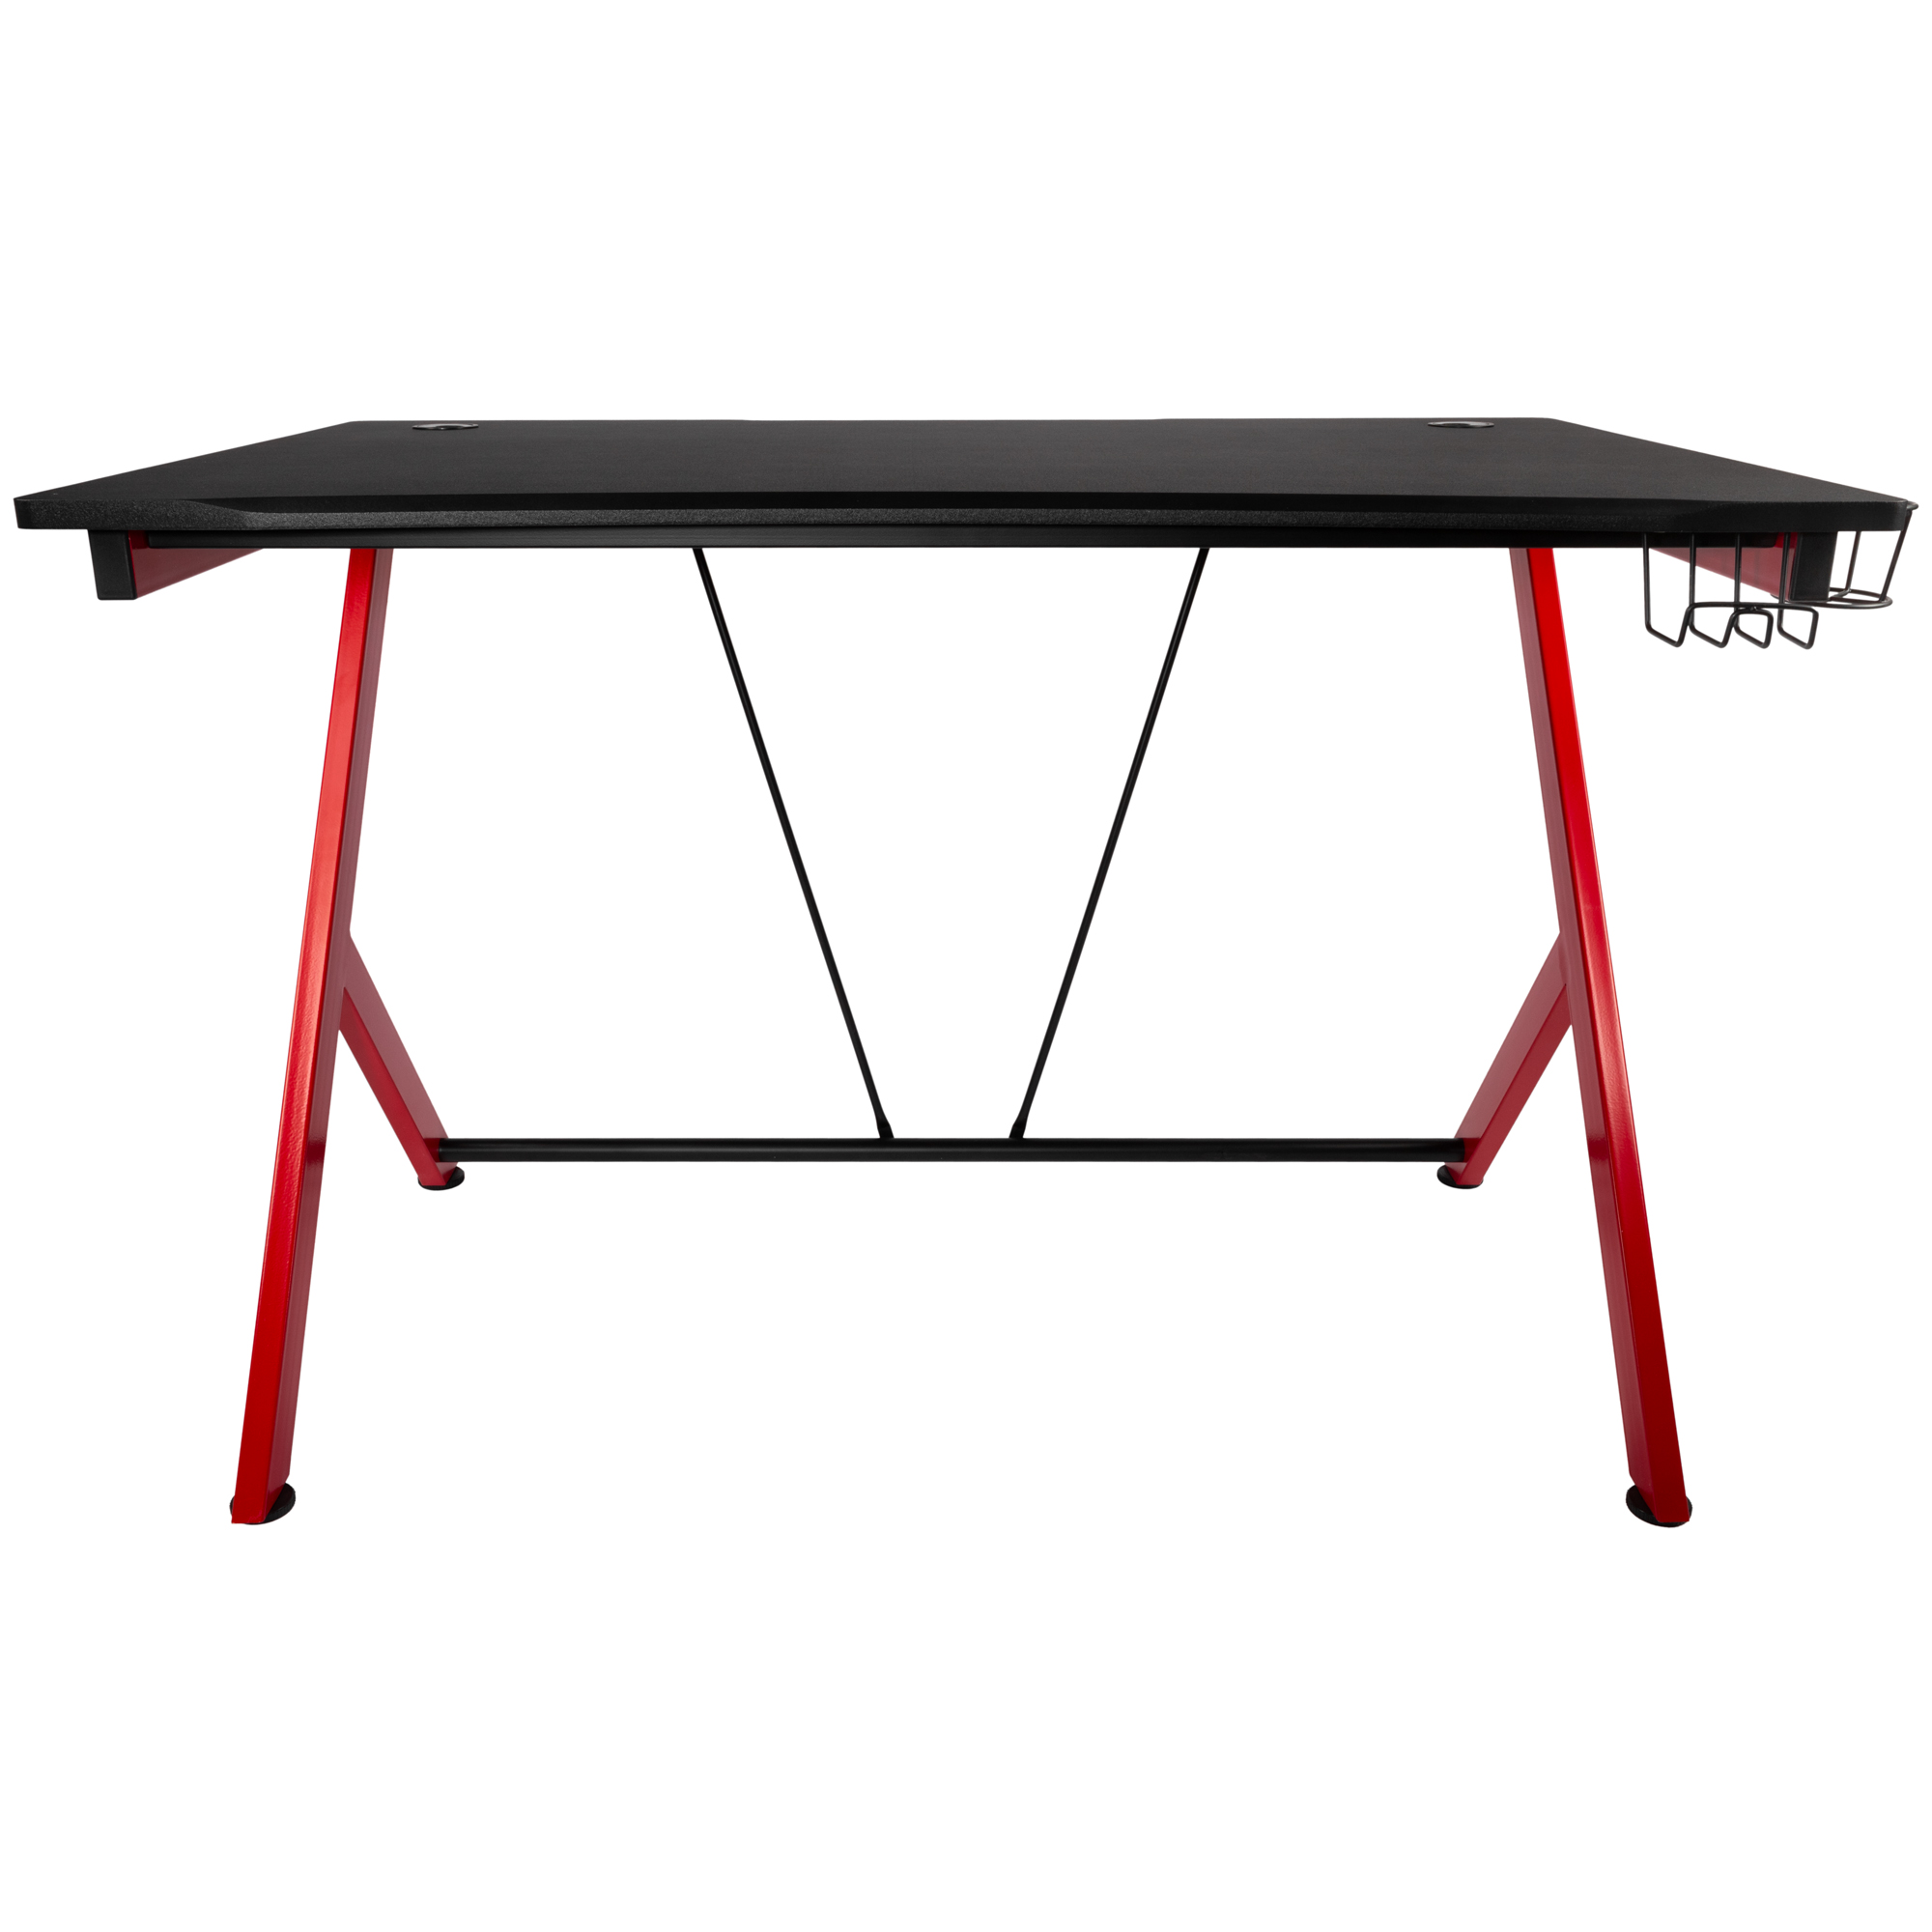 Nitro Concepts Gaming Desk D12 - Black/Red